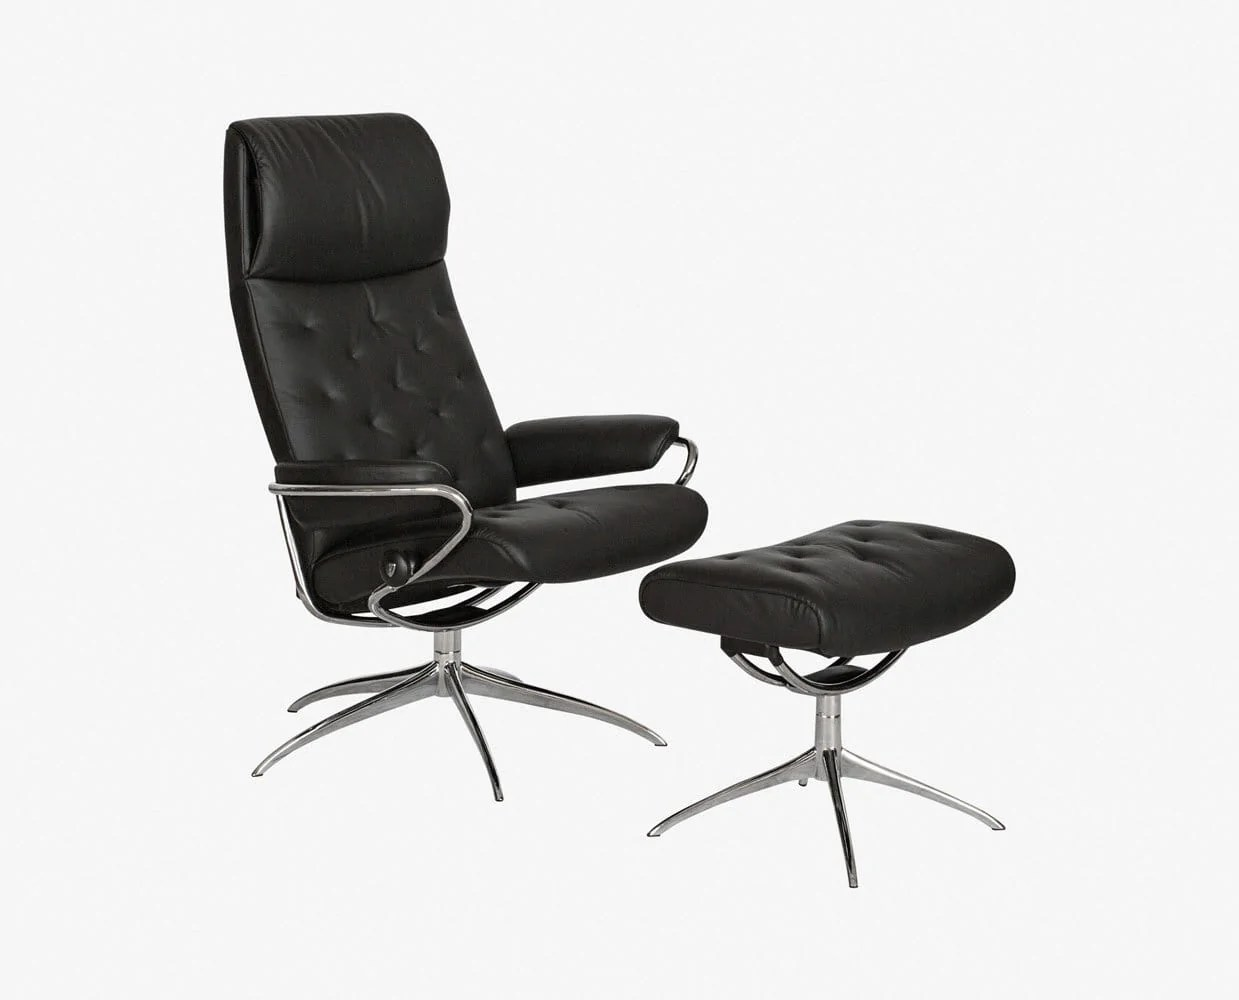 Dania Chairs Stressless Metro High Back Chair And Ottoman Dania Furniture